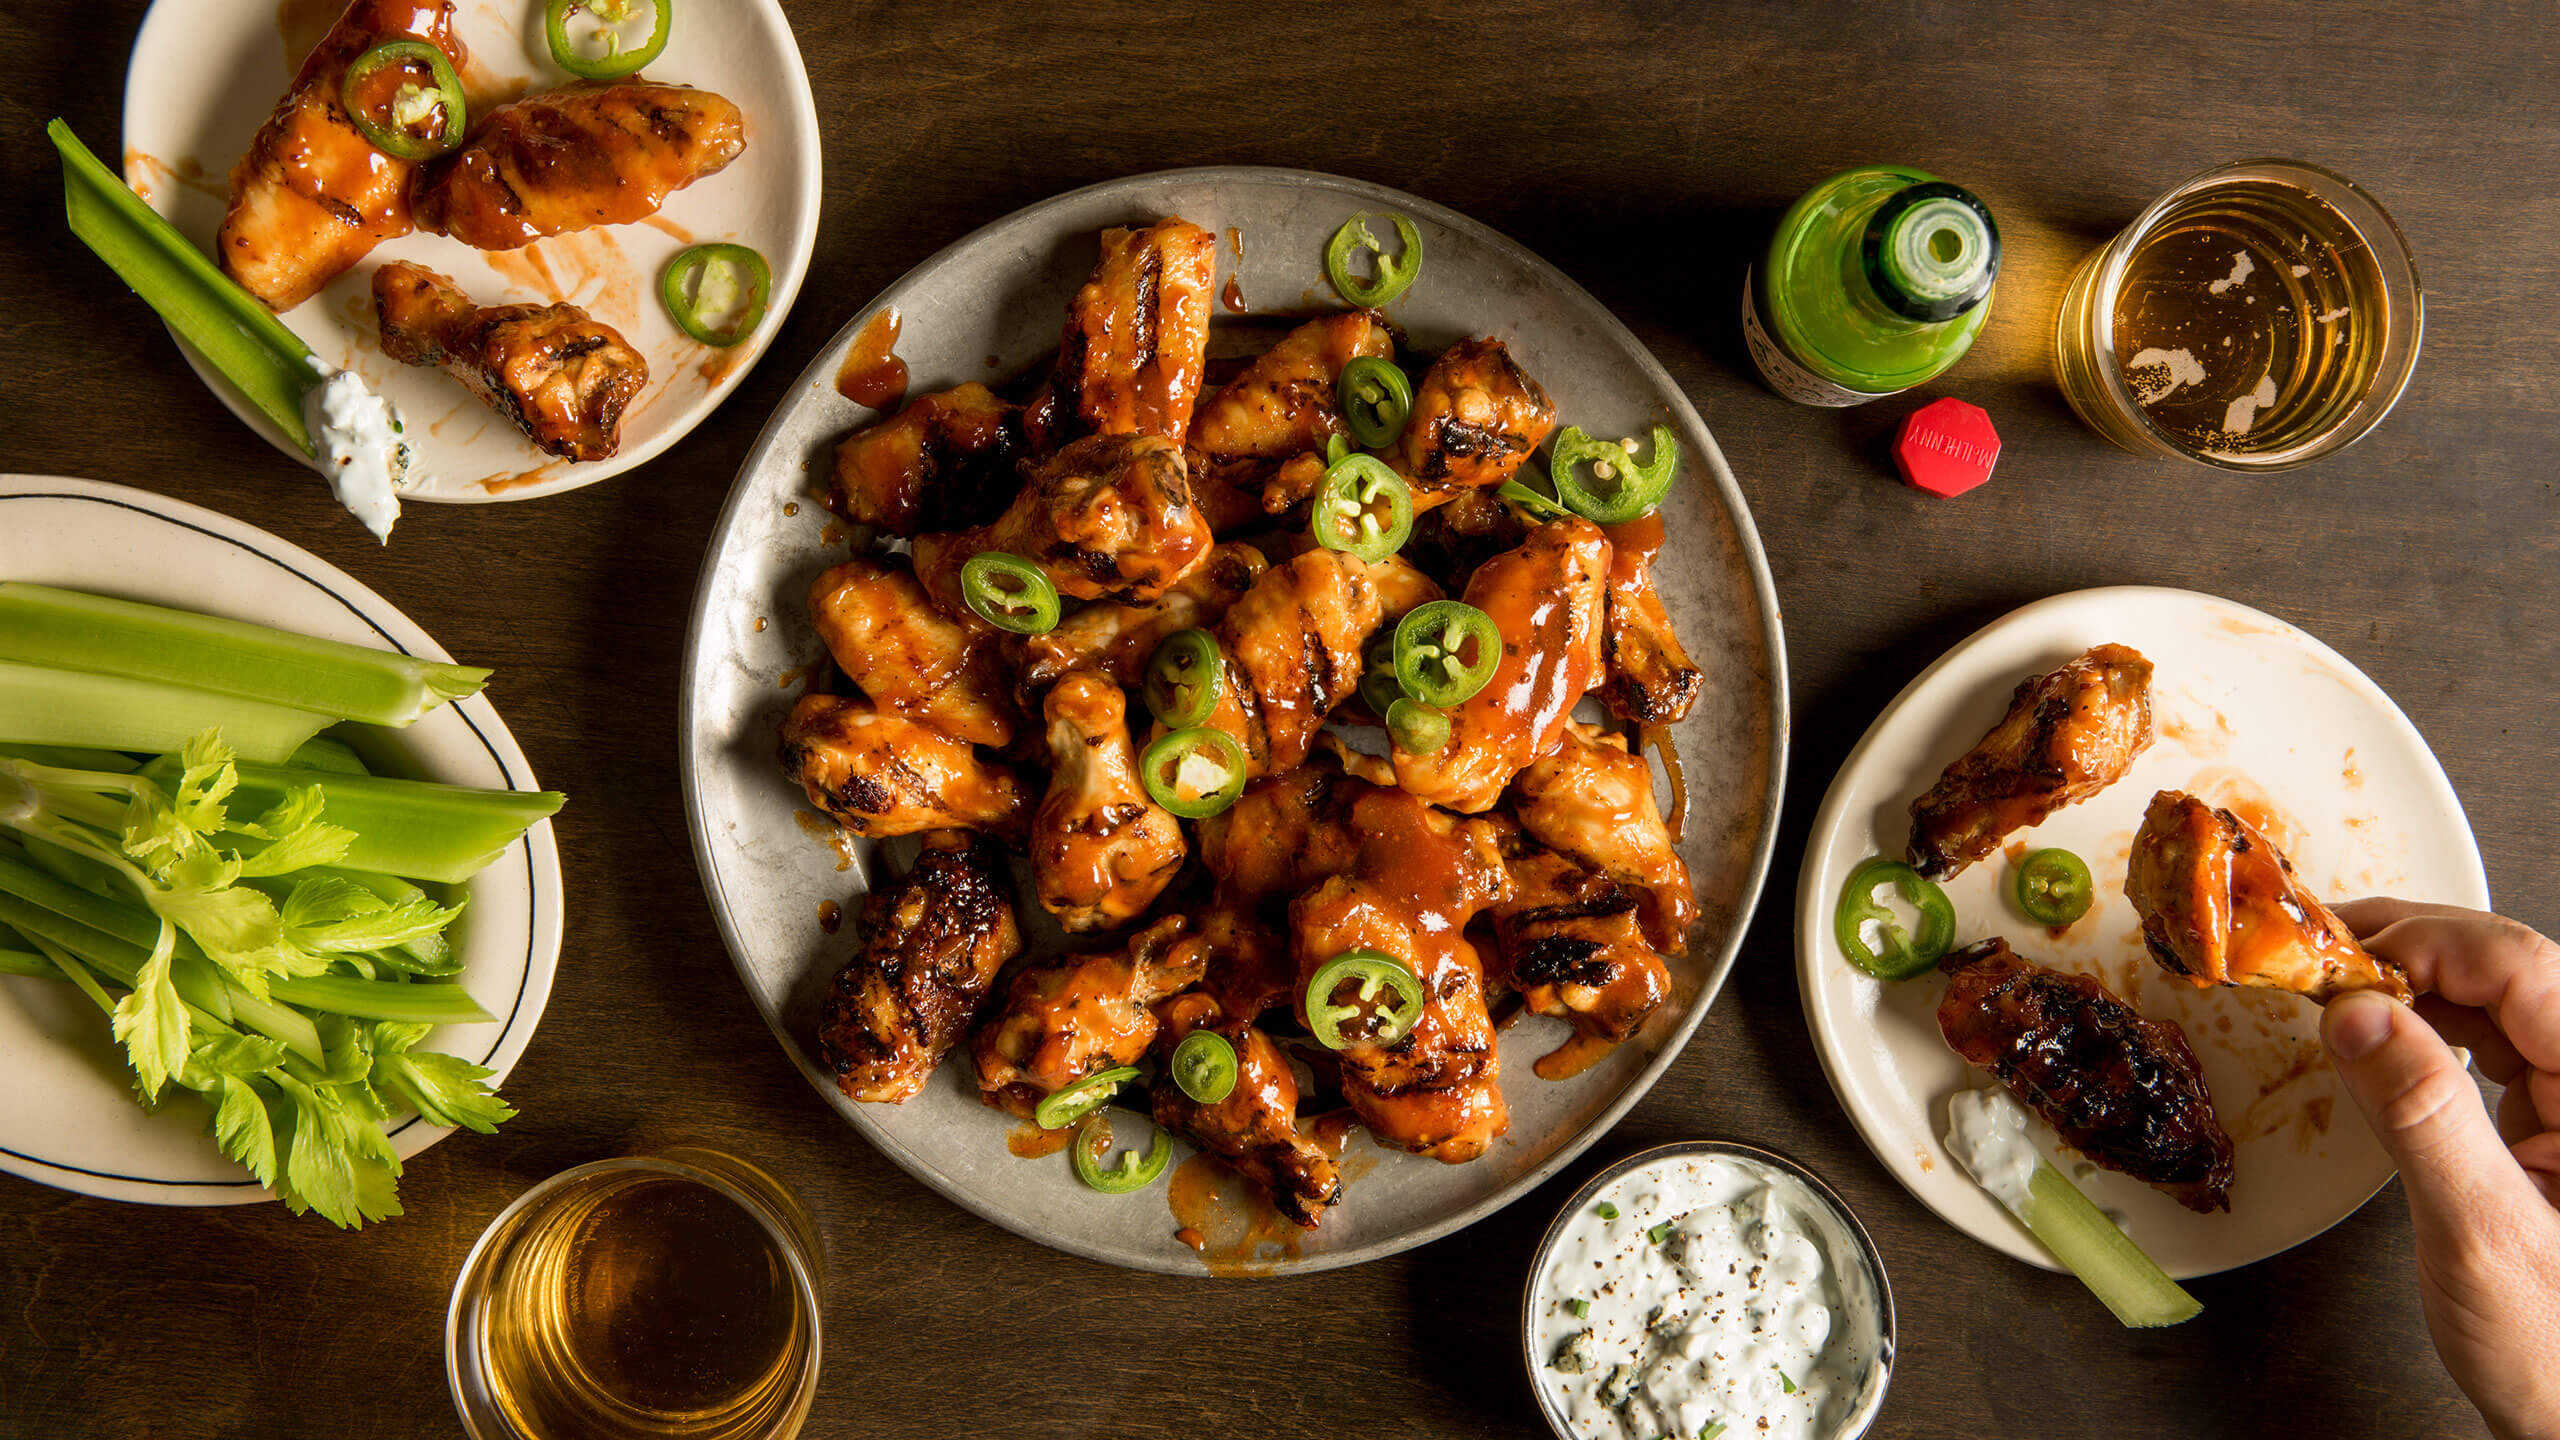 Grilled Chicken Wings with Jalapeño BBQ Sauce